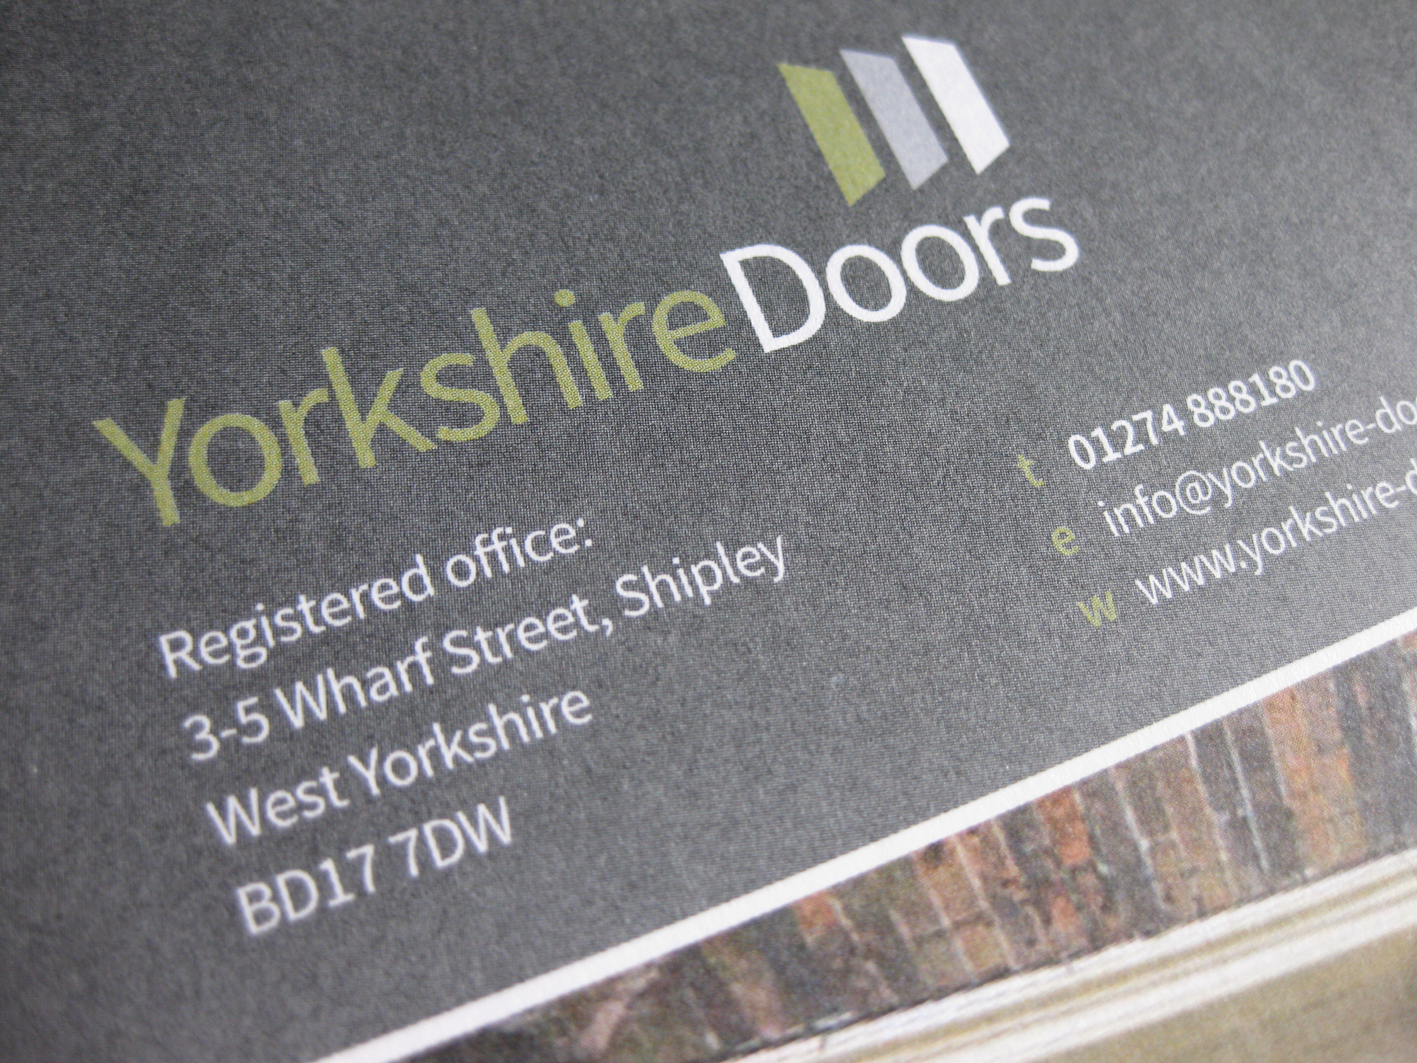 ... for Yorkshire Doors has been designed by Aldred Design. An updated brand identity has also been created and applied to all literature and promotional ... & What\u0027s new?: logo